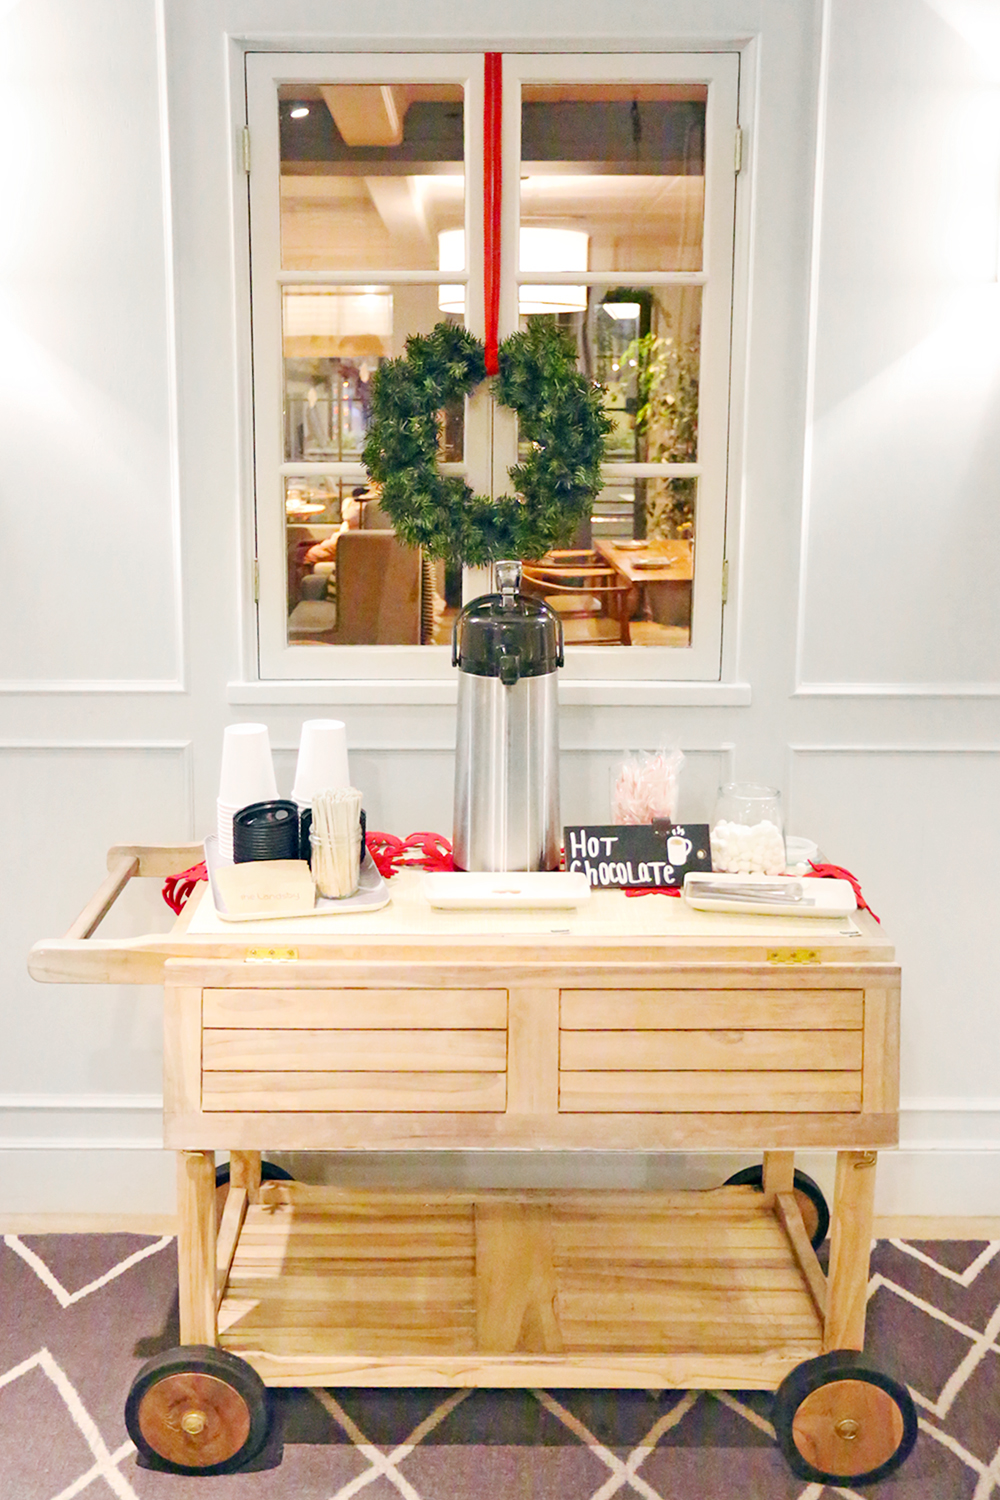 Beyond Basic Blog The Landsby Solvang Hot Chocolate Bar Cart